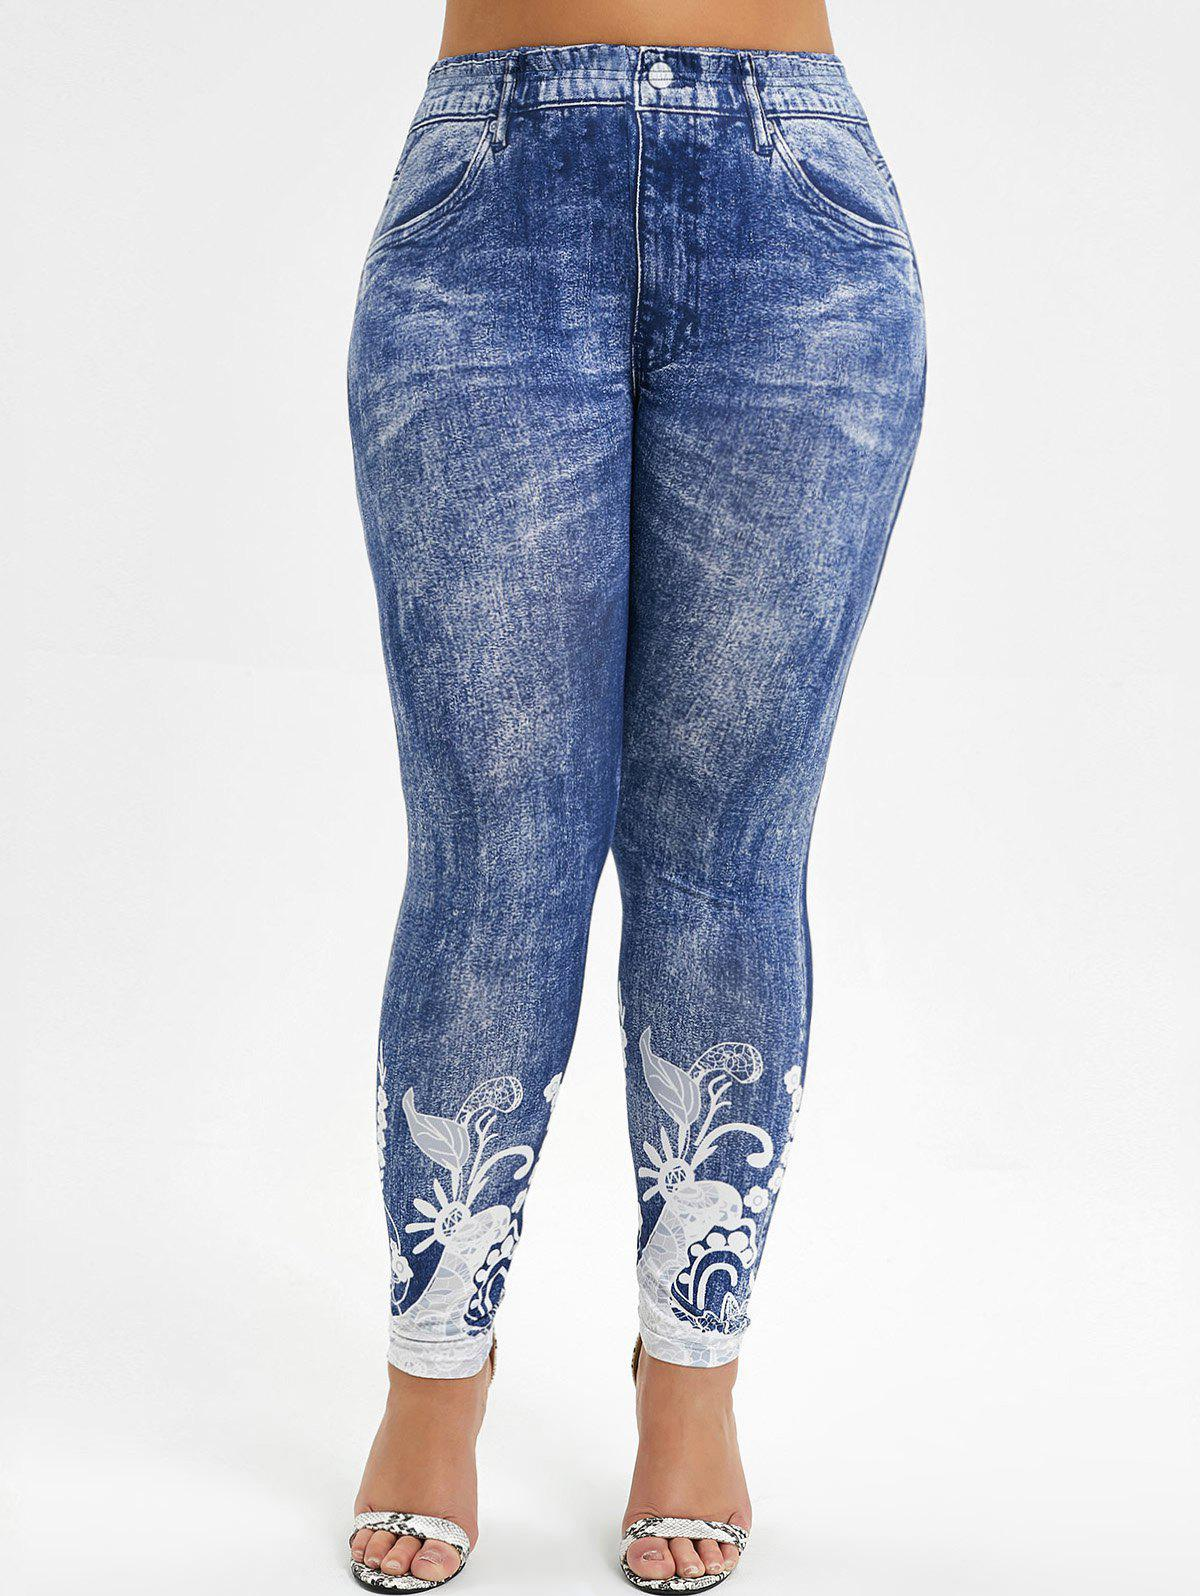 Unique High Waisted Printed Plus Size Jeggings